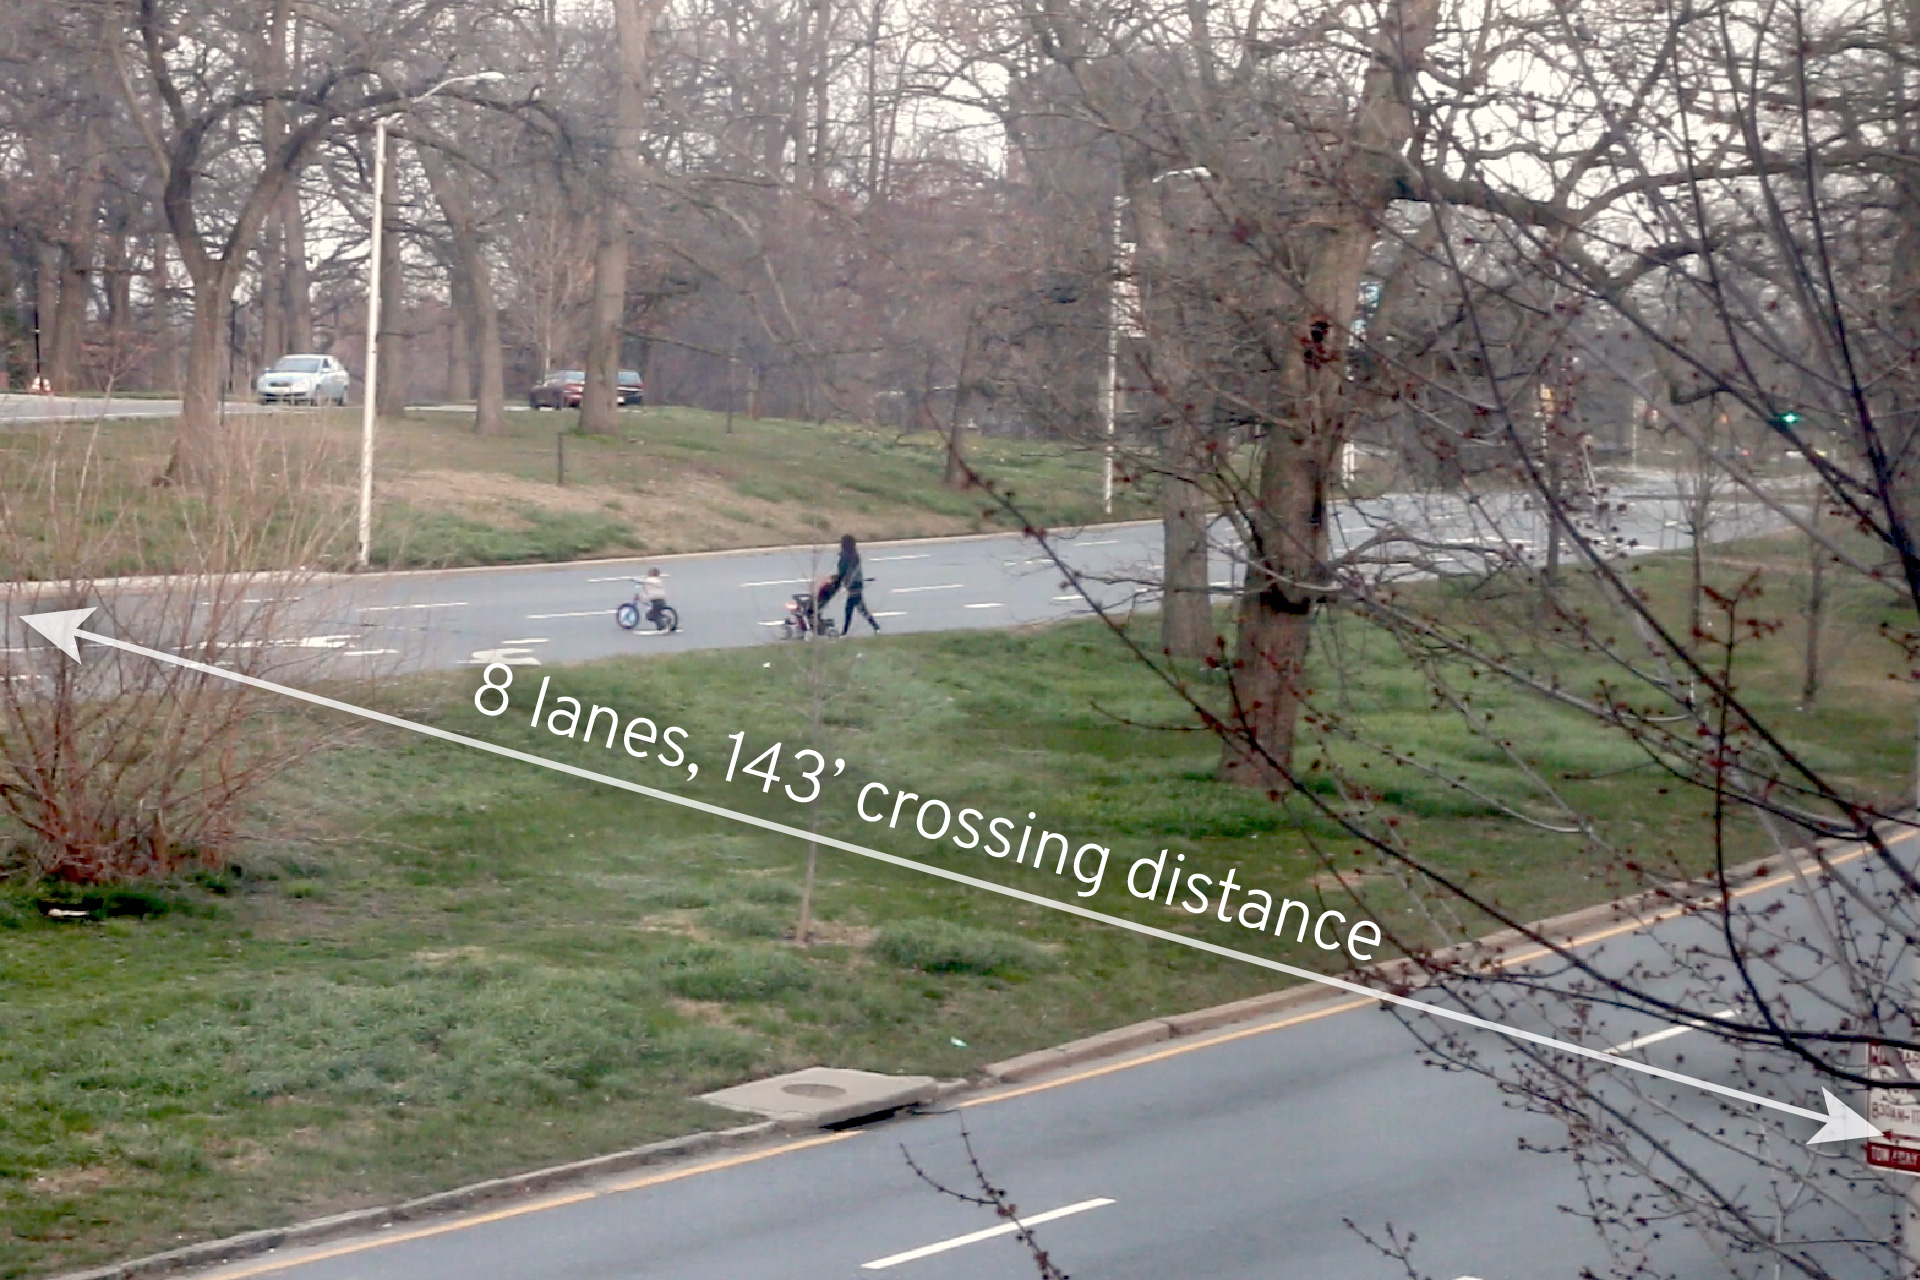 Druid Hill Park 3100 Auchentoroly family crossing distance